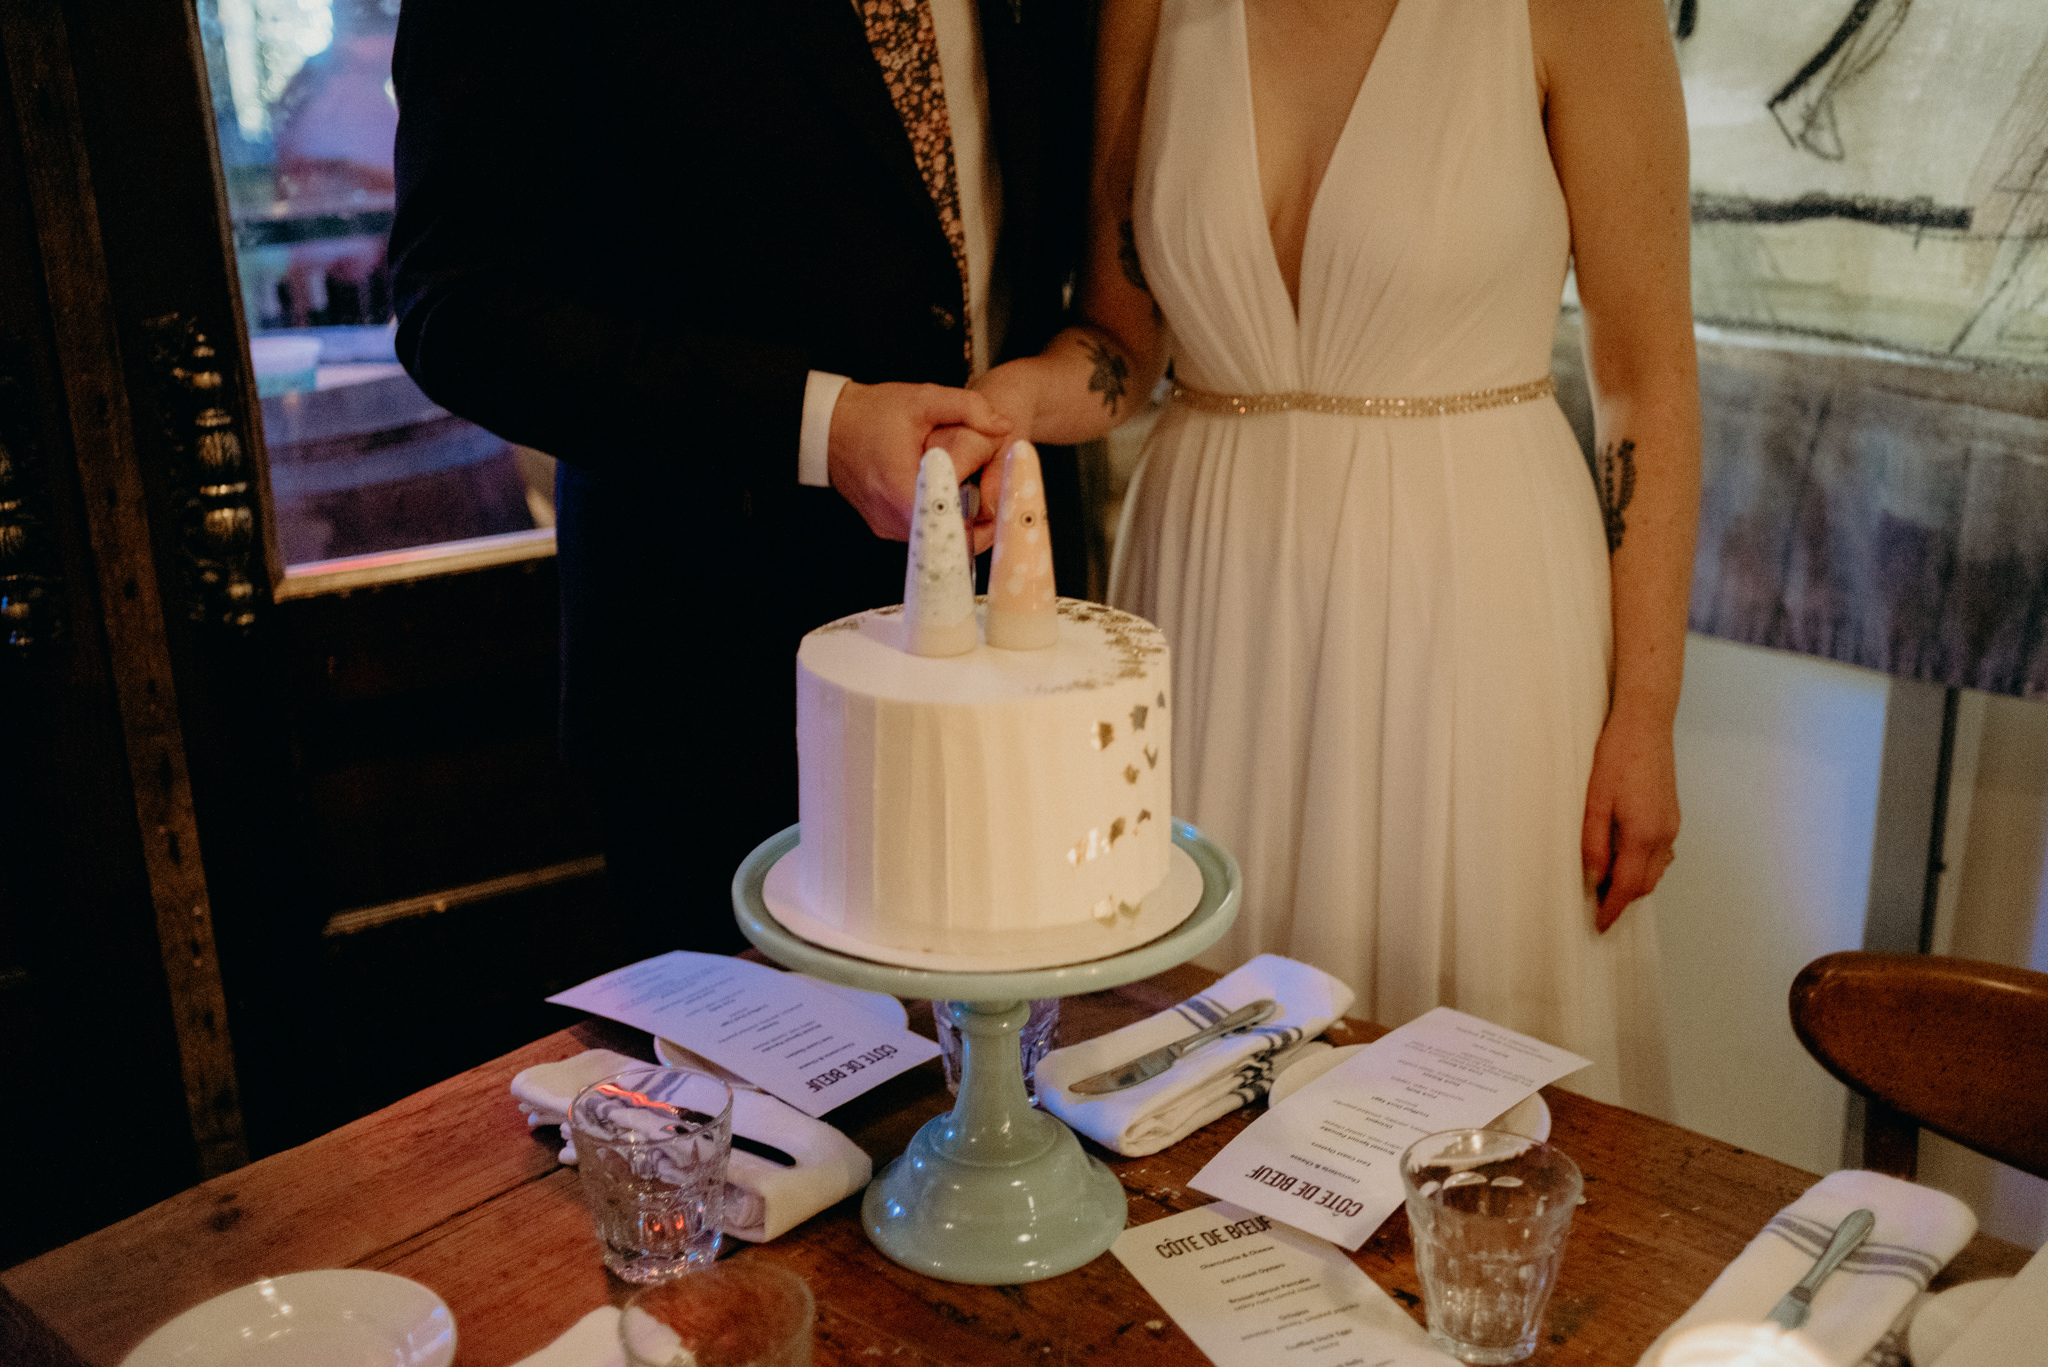 bride and groom cutting cake in restaurant, Cote de Boeuf wedding reception